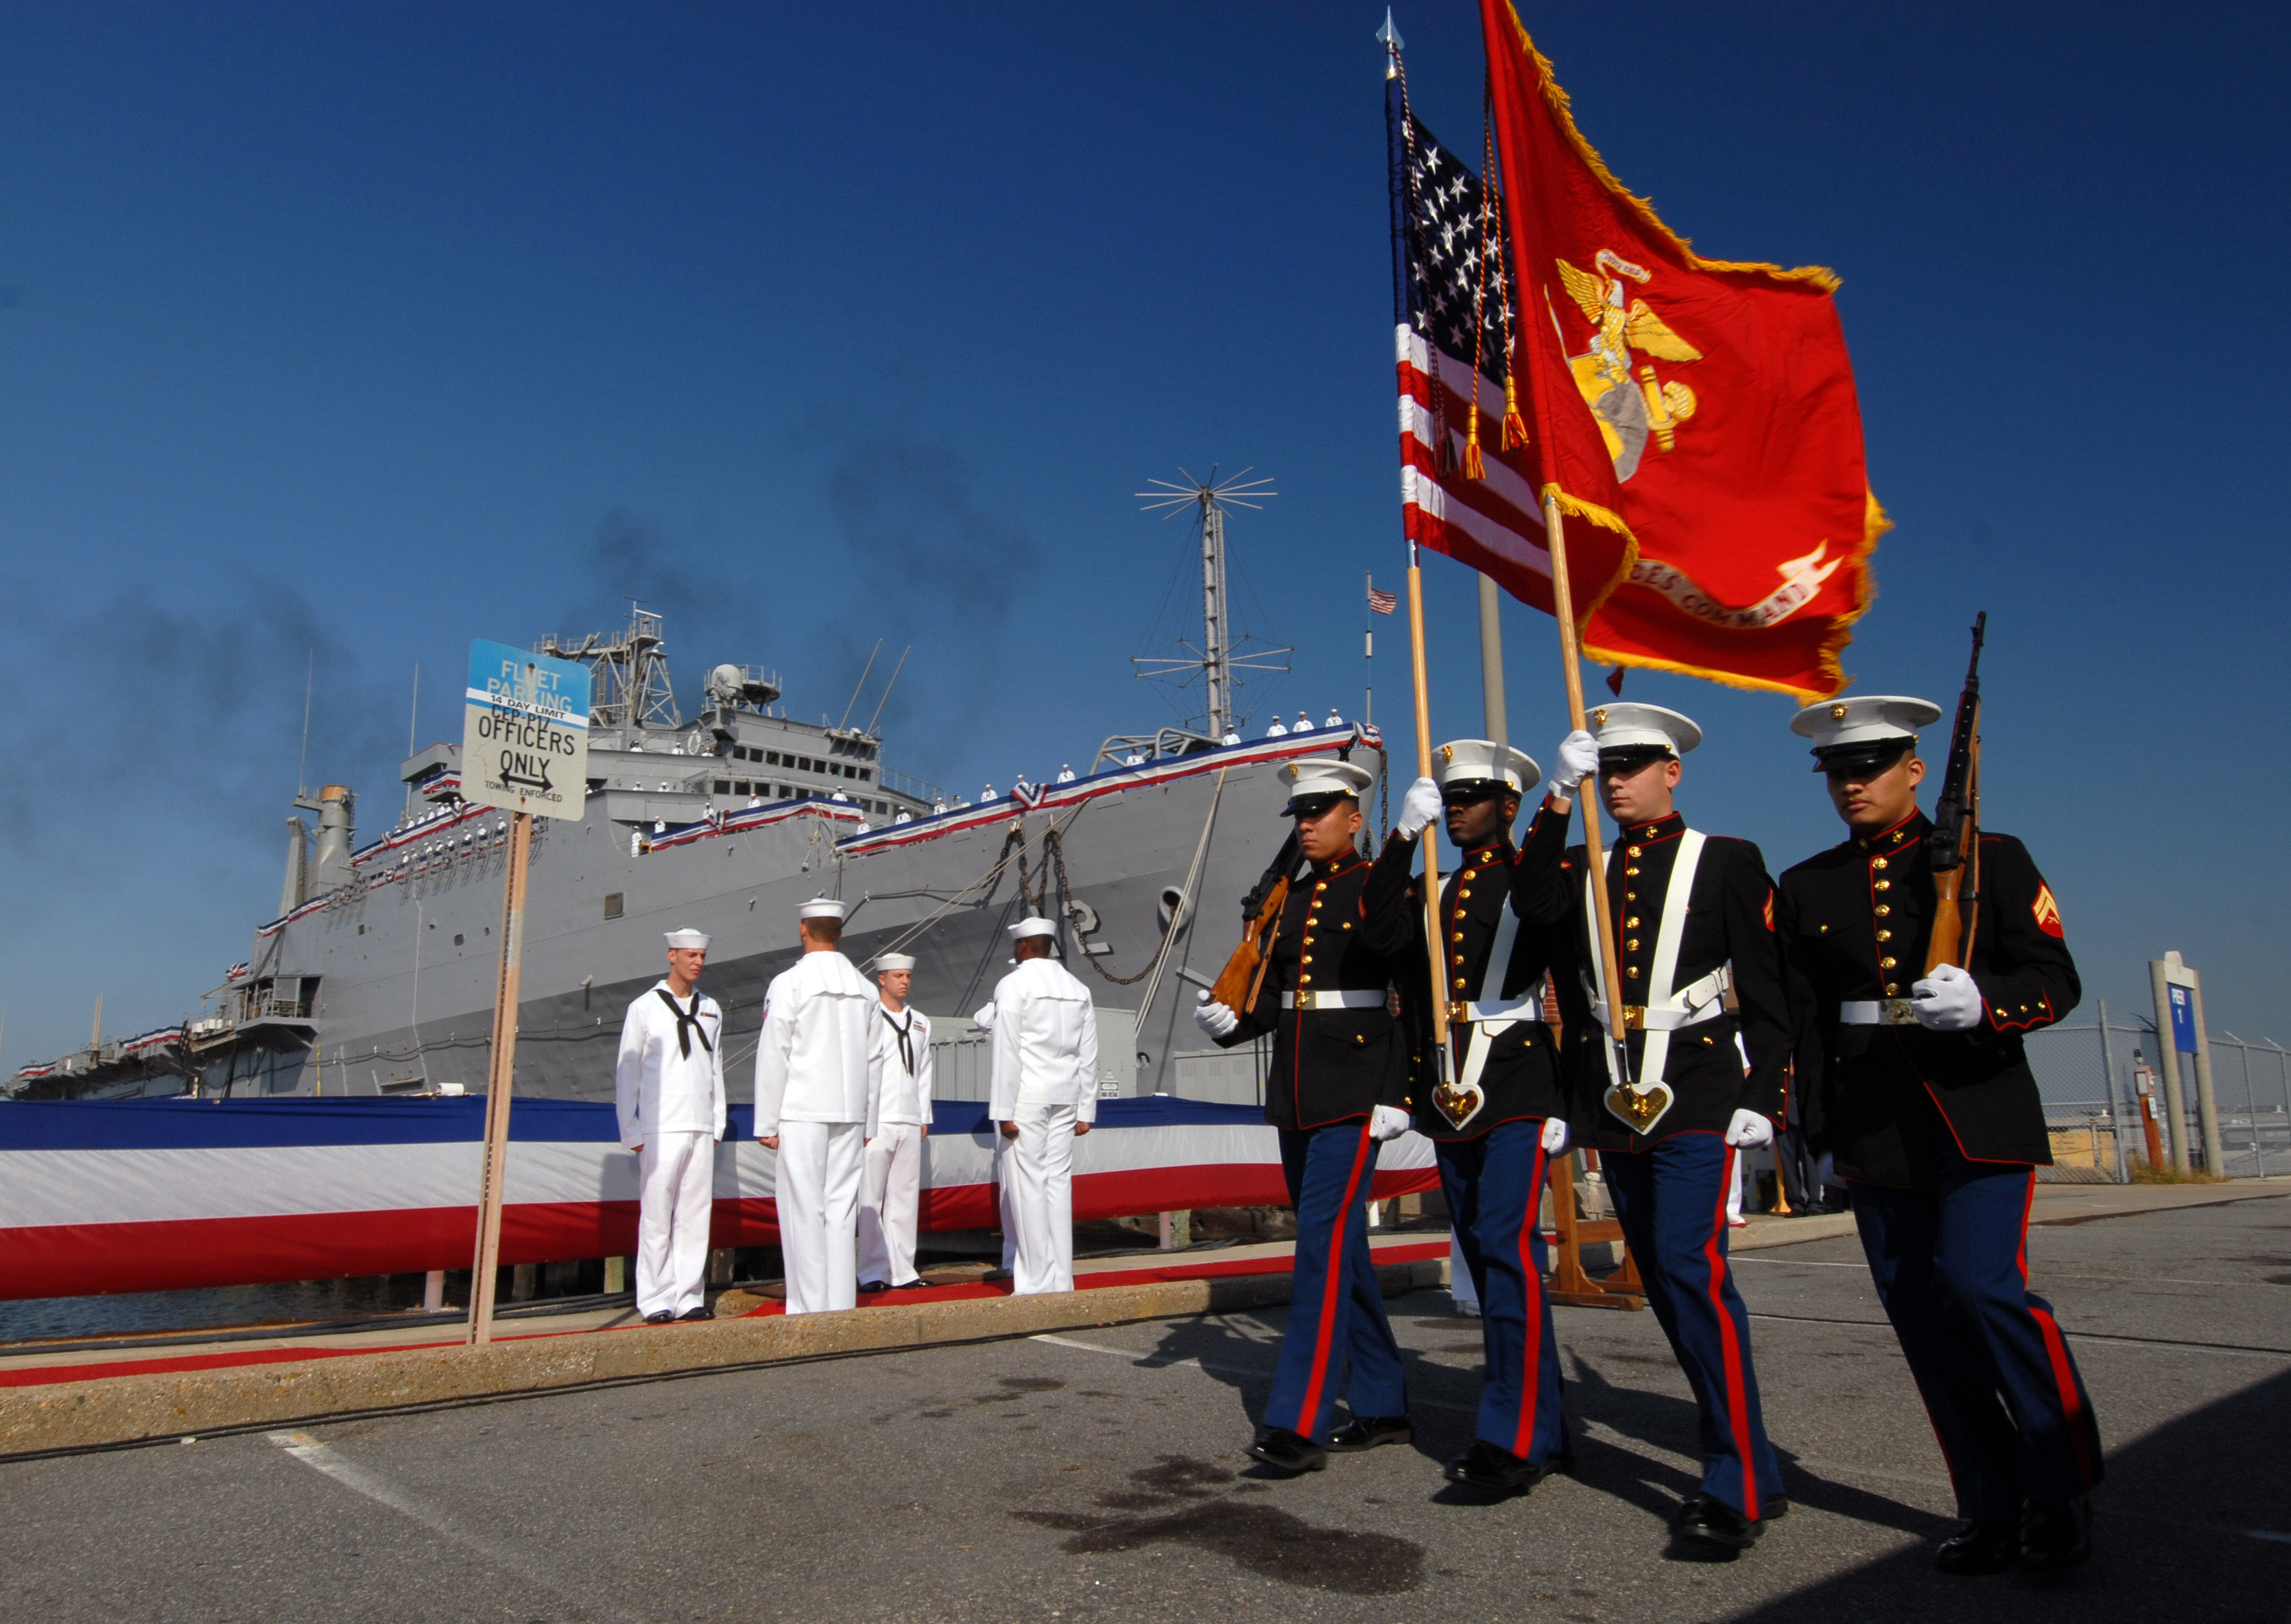 File:US Navy 070926-N-8907D-016 The Marine color guard ...